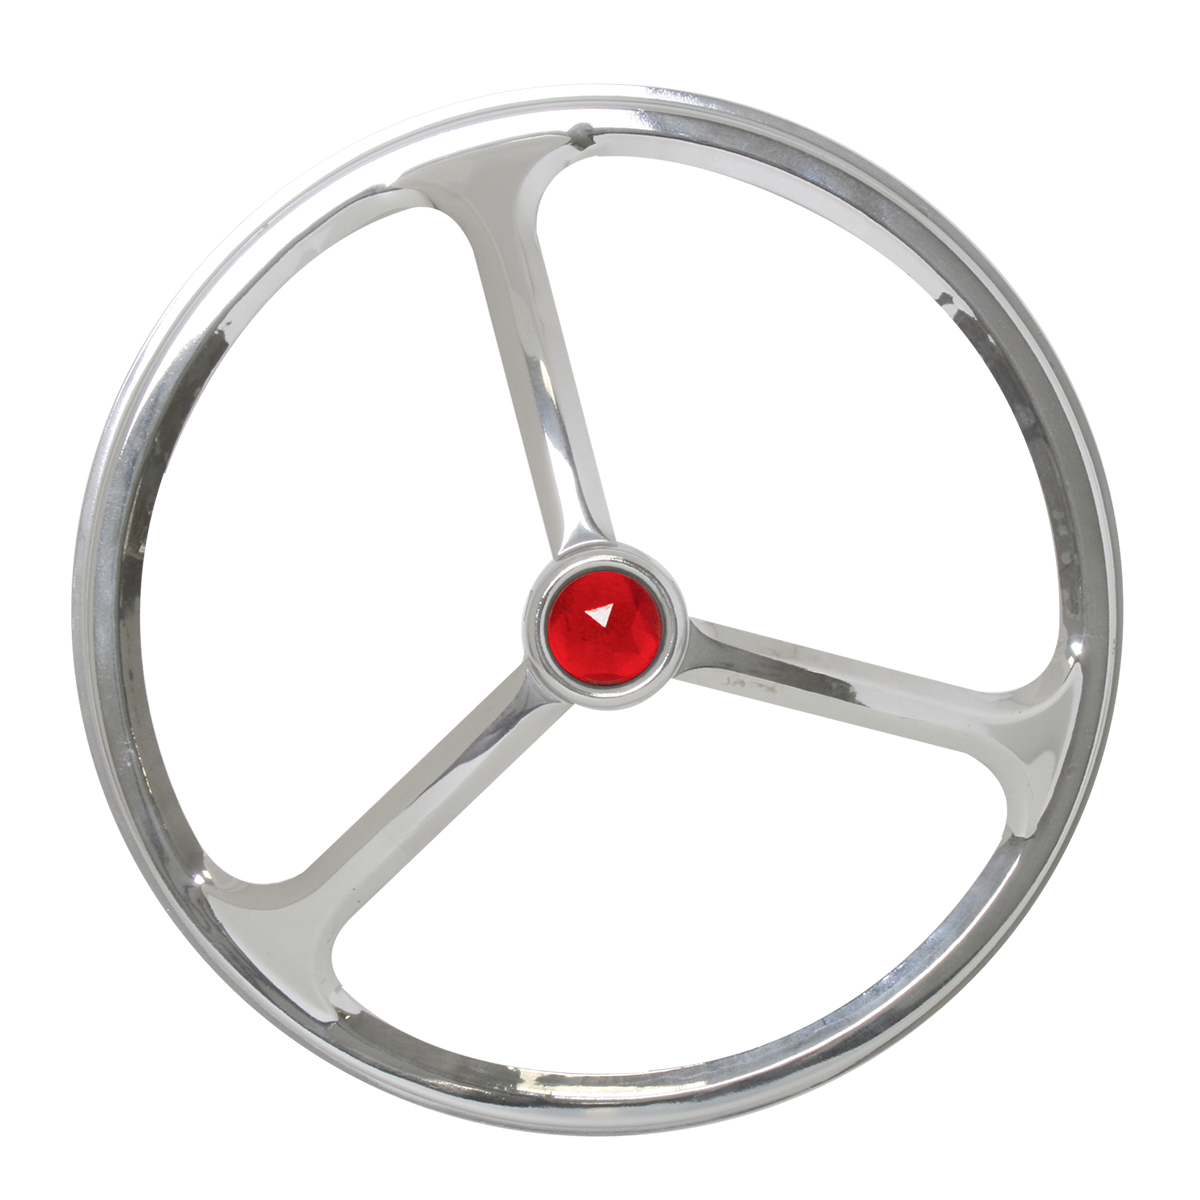 #90881/#90891 Chrome Plated Lucas Style Headlight Cover with Red Dot